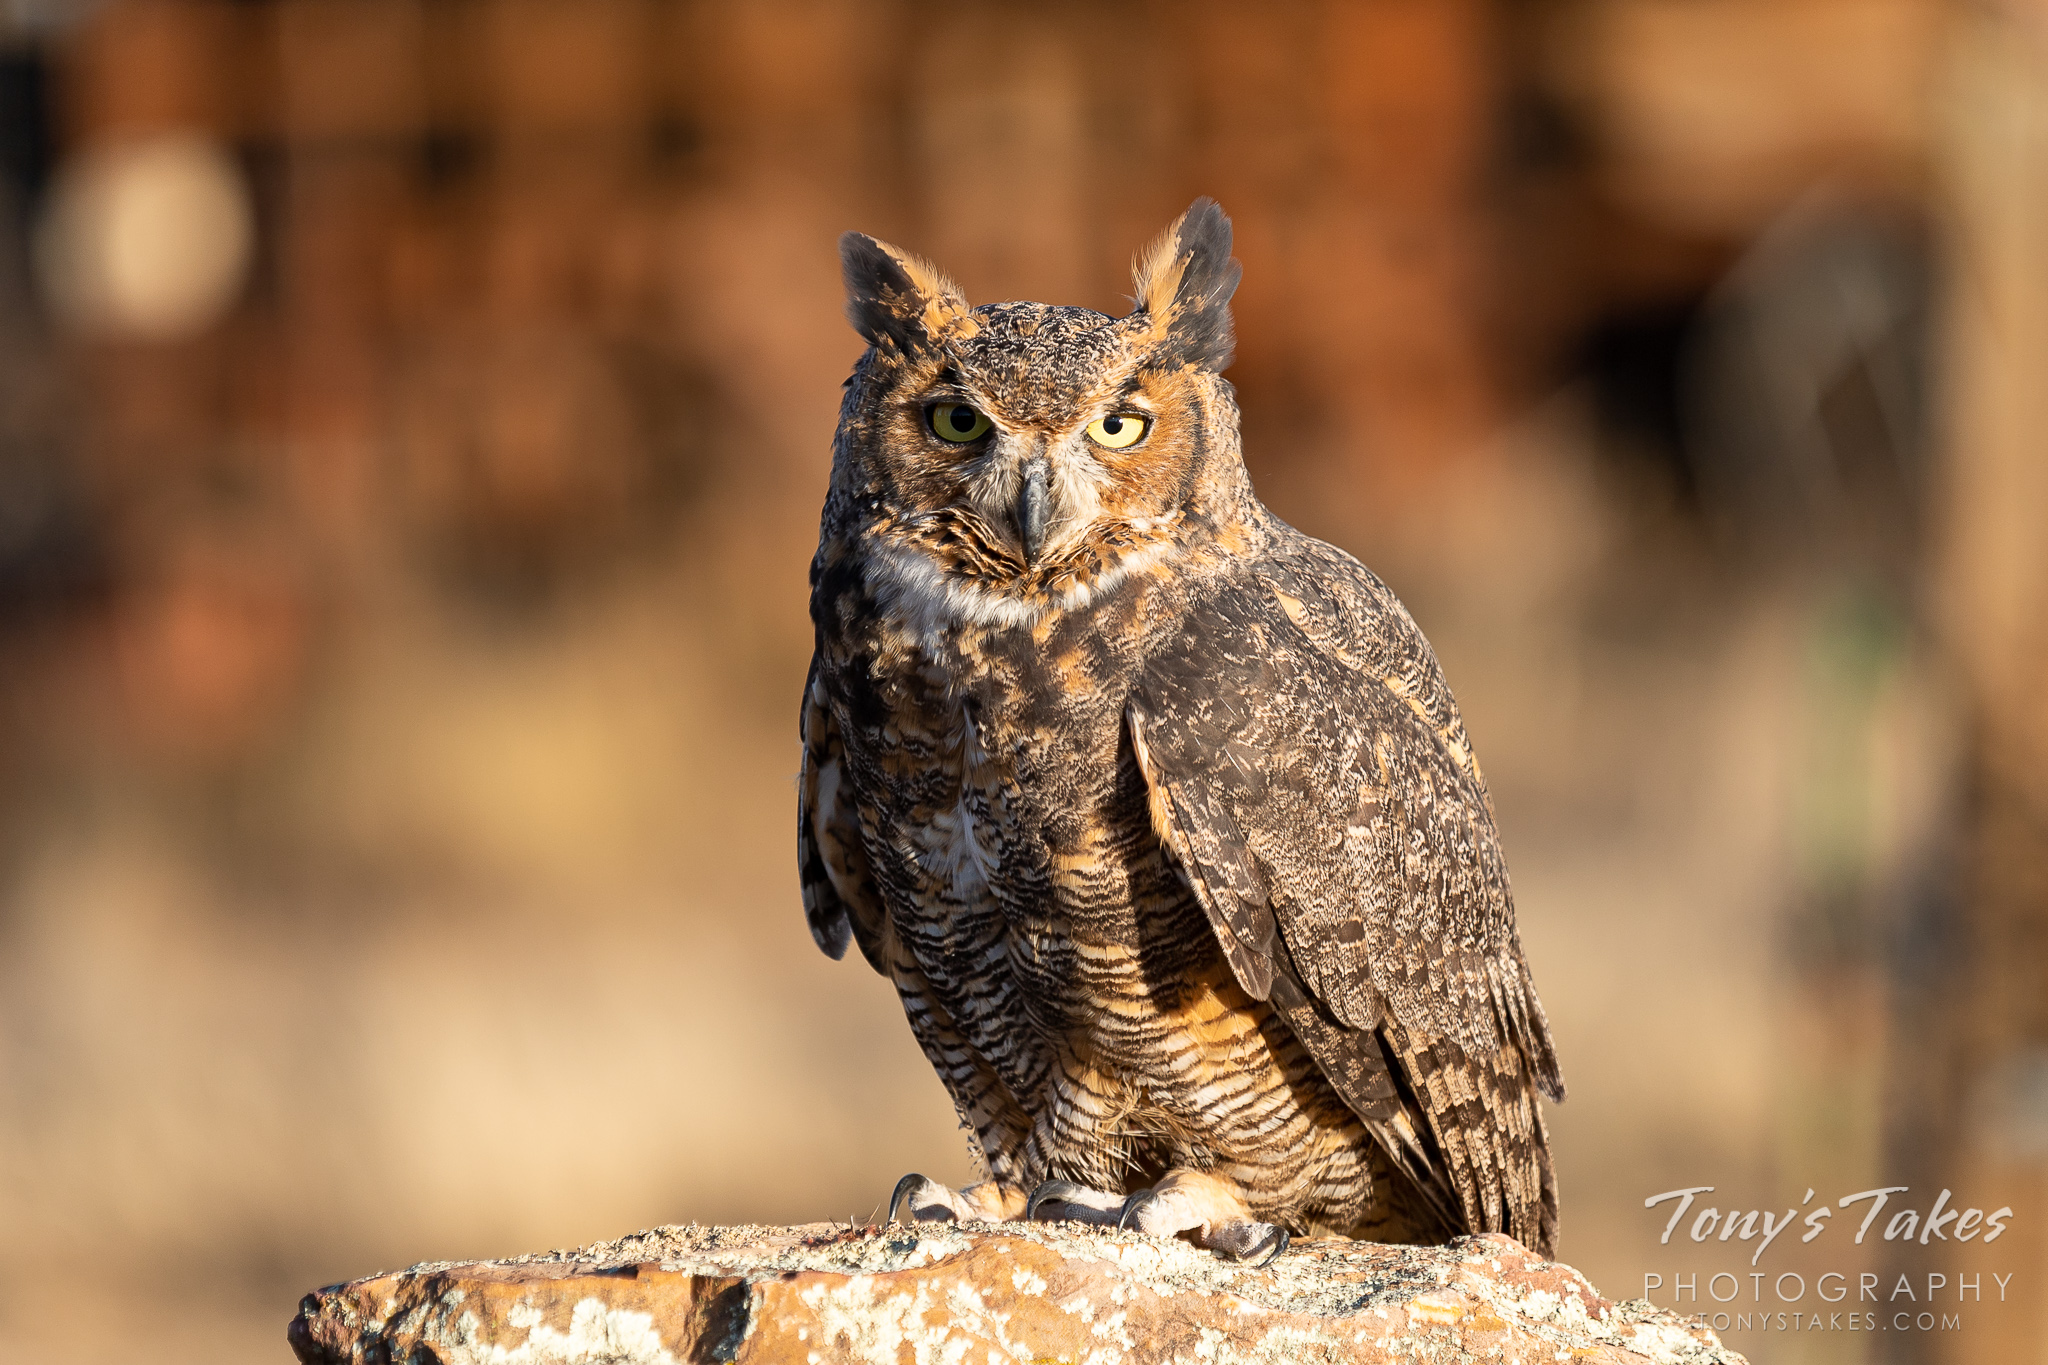 A great horned owl (captive) stays focused on the photographer. (© Tony's Takes)